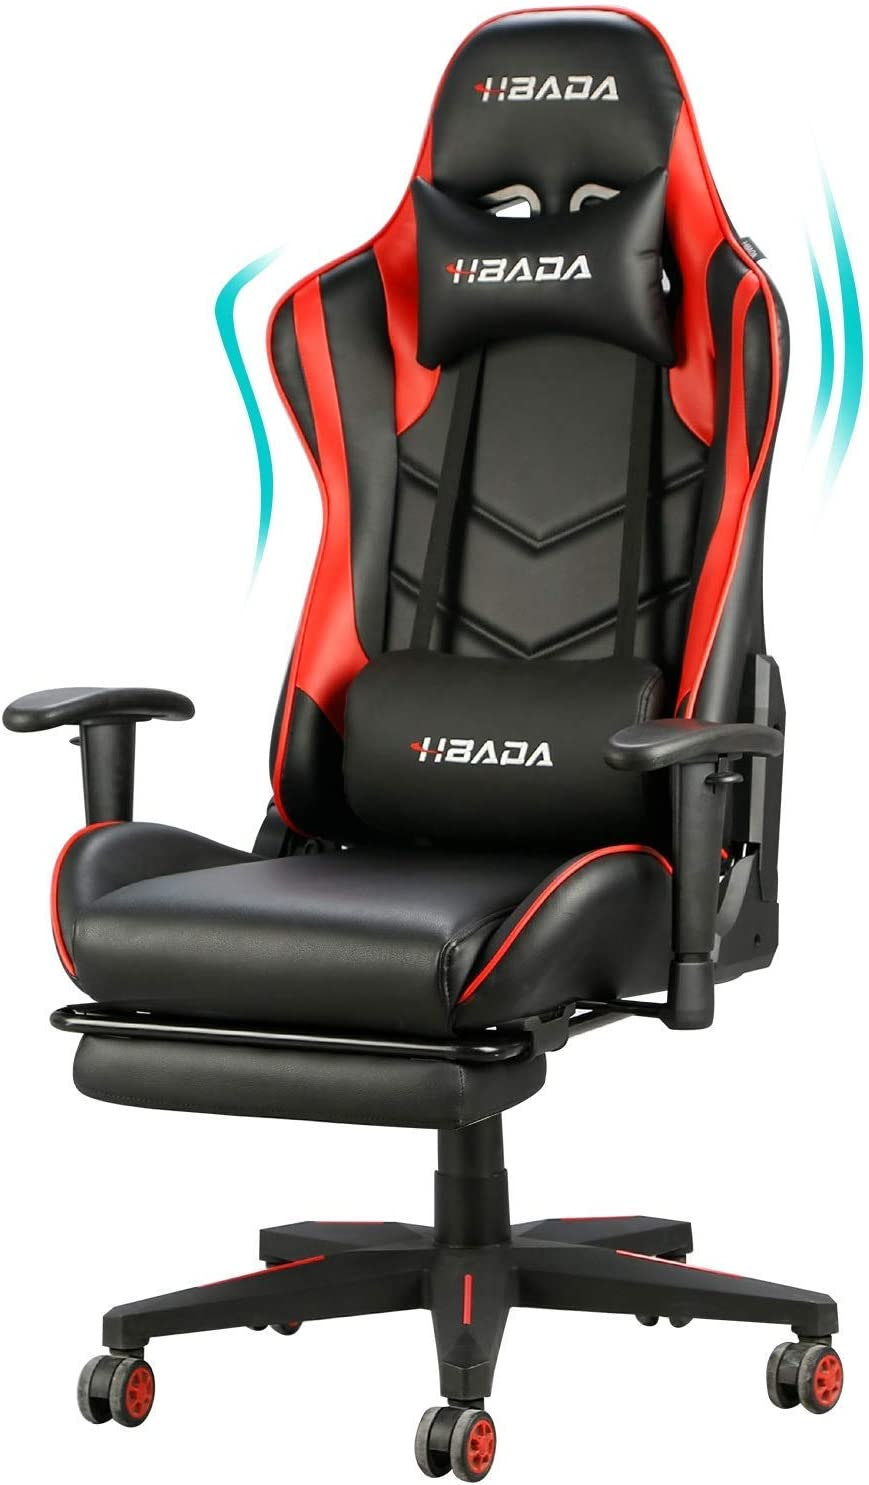 Hbada Gaming Chair Ergonomic with Footrest Review